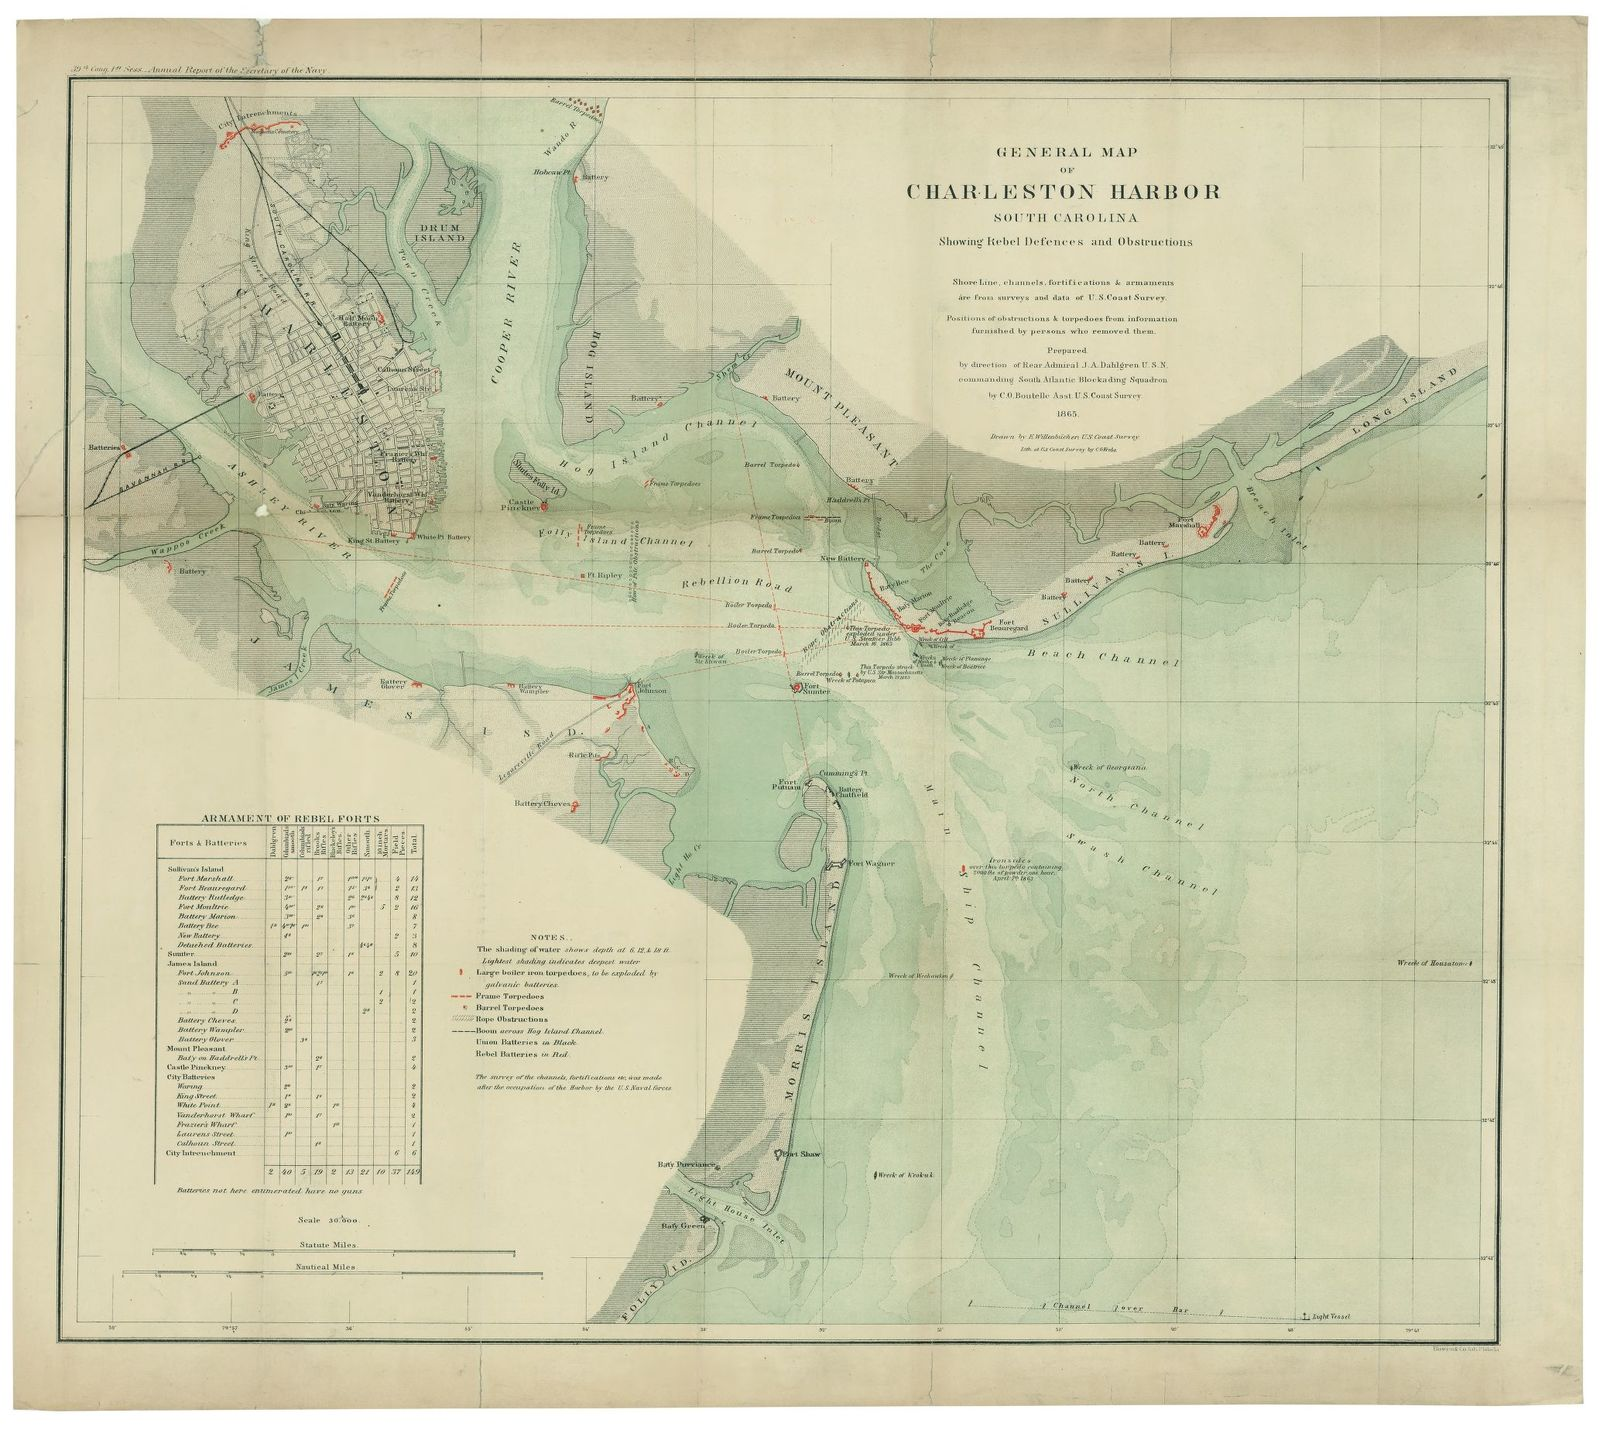 General map of Charleston Harbor, South Carolina : showing rebel defences [sic] and obstructions /